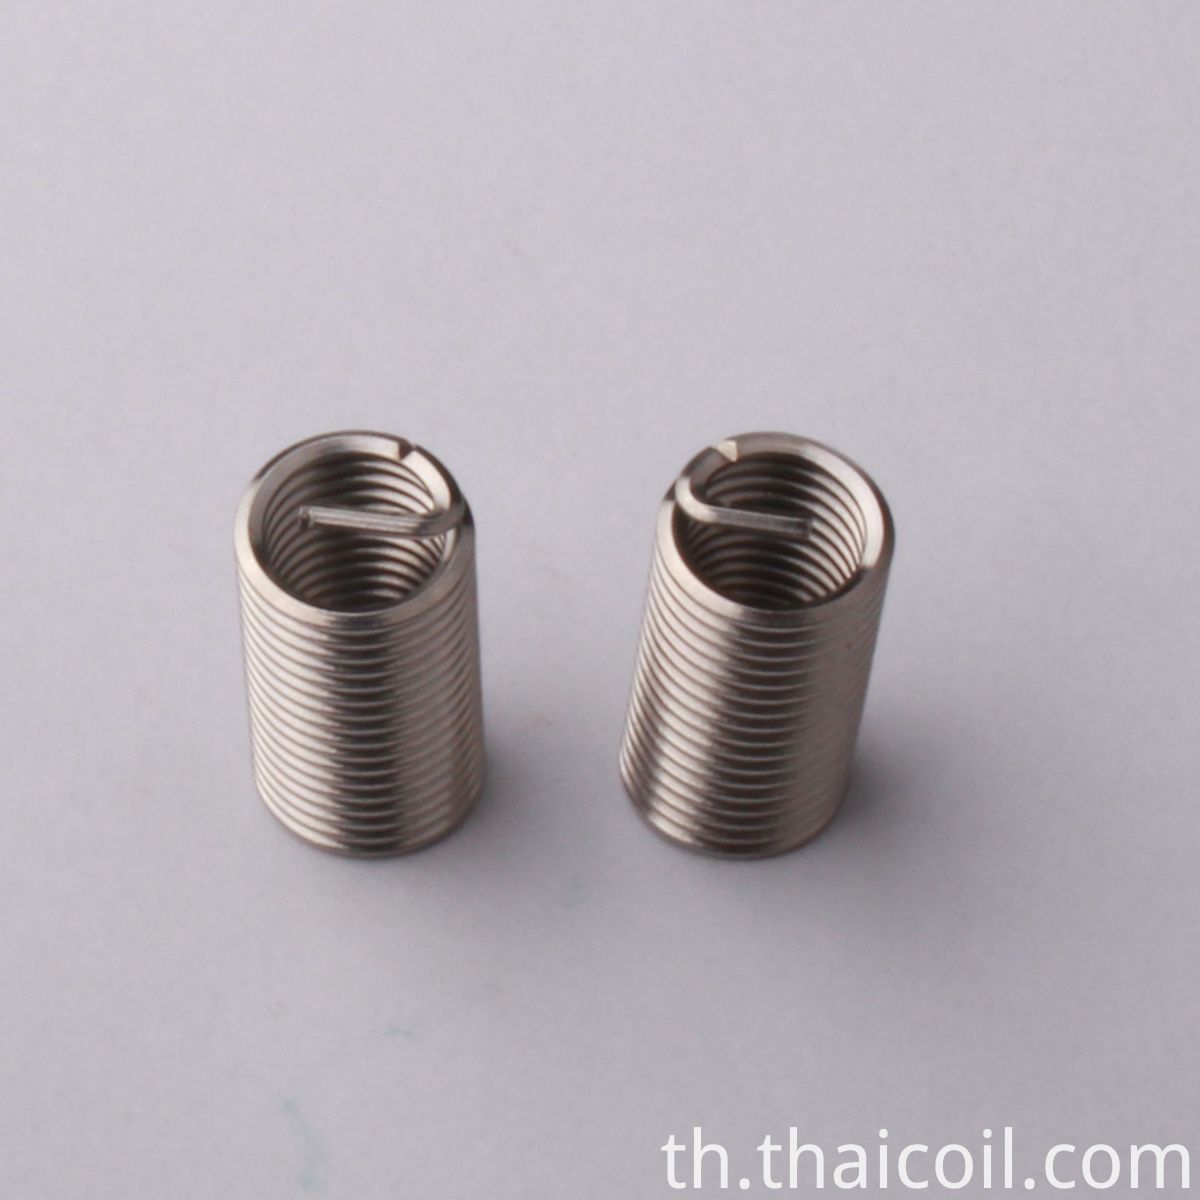 MJ Wire Threaded Insert